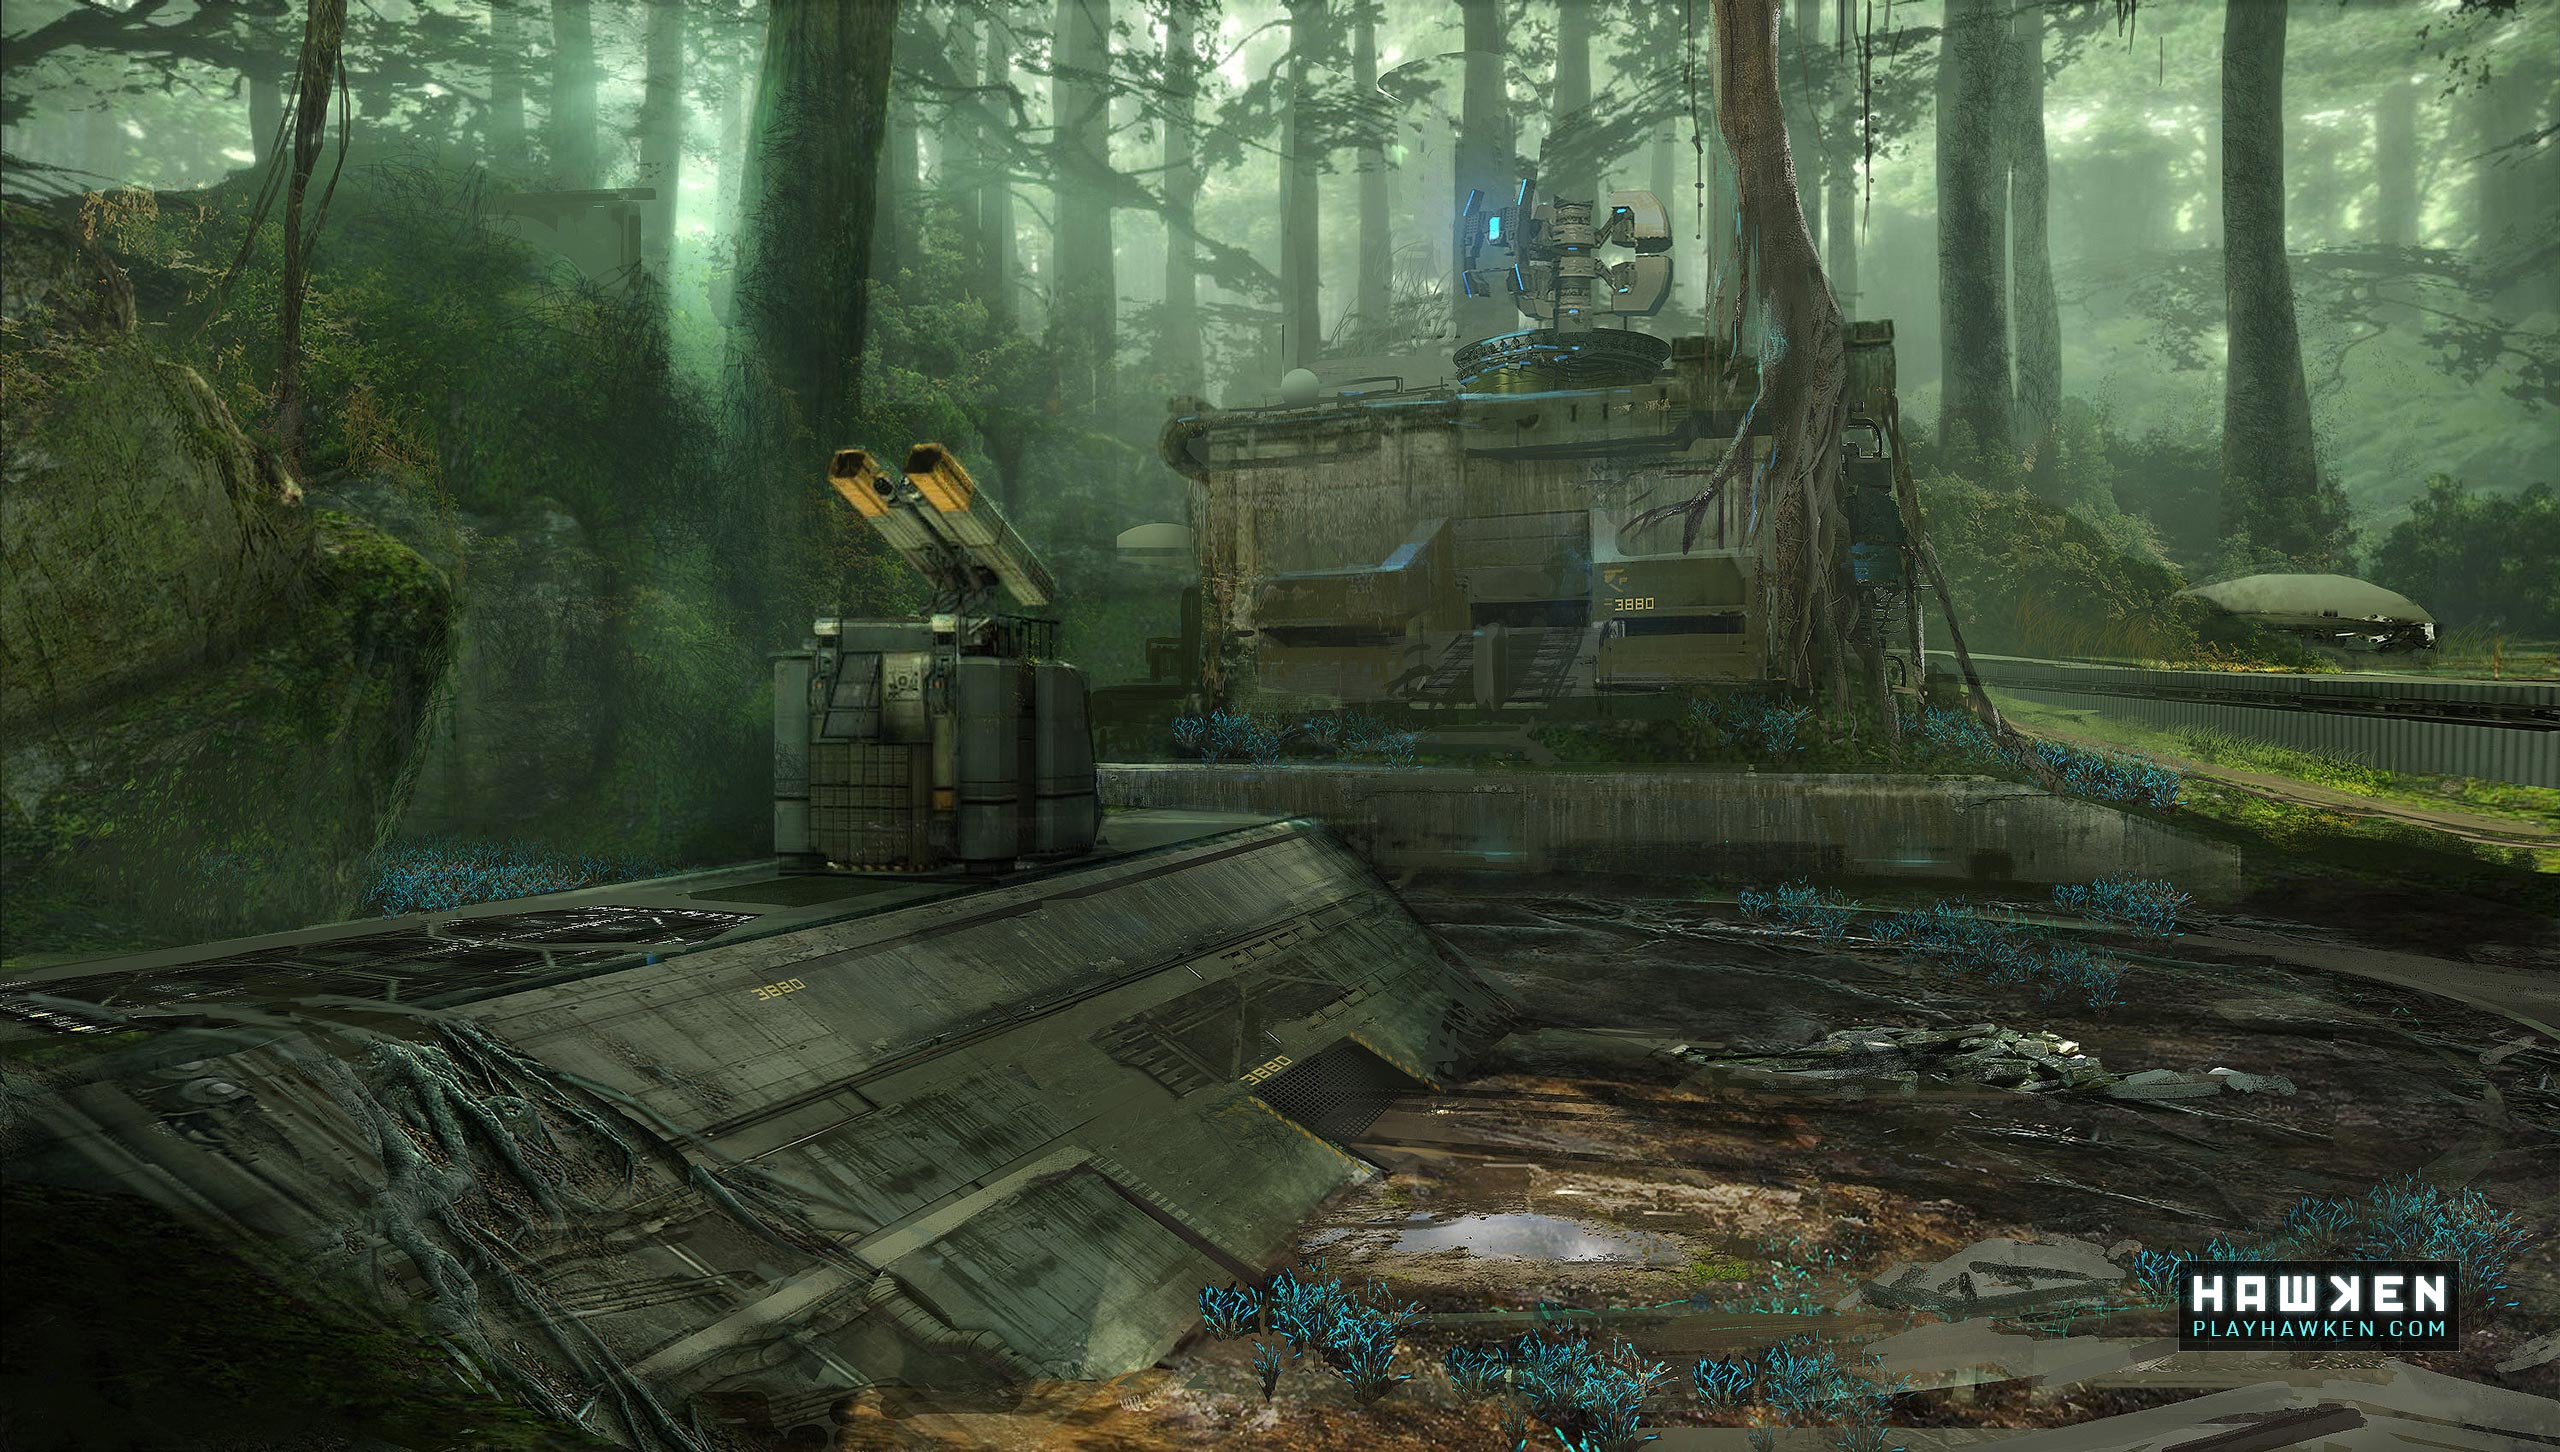 2013 Meteor Entertainment, Inc. All rights reserved. HAWKEN, Meteor ...